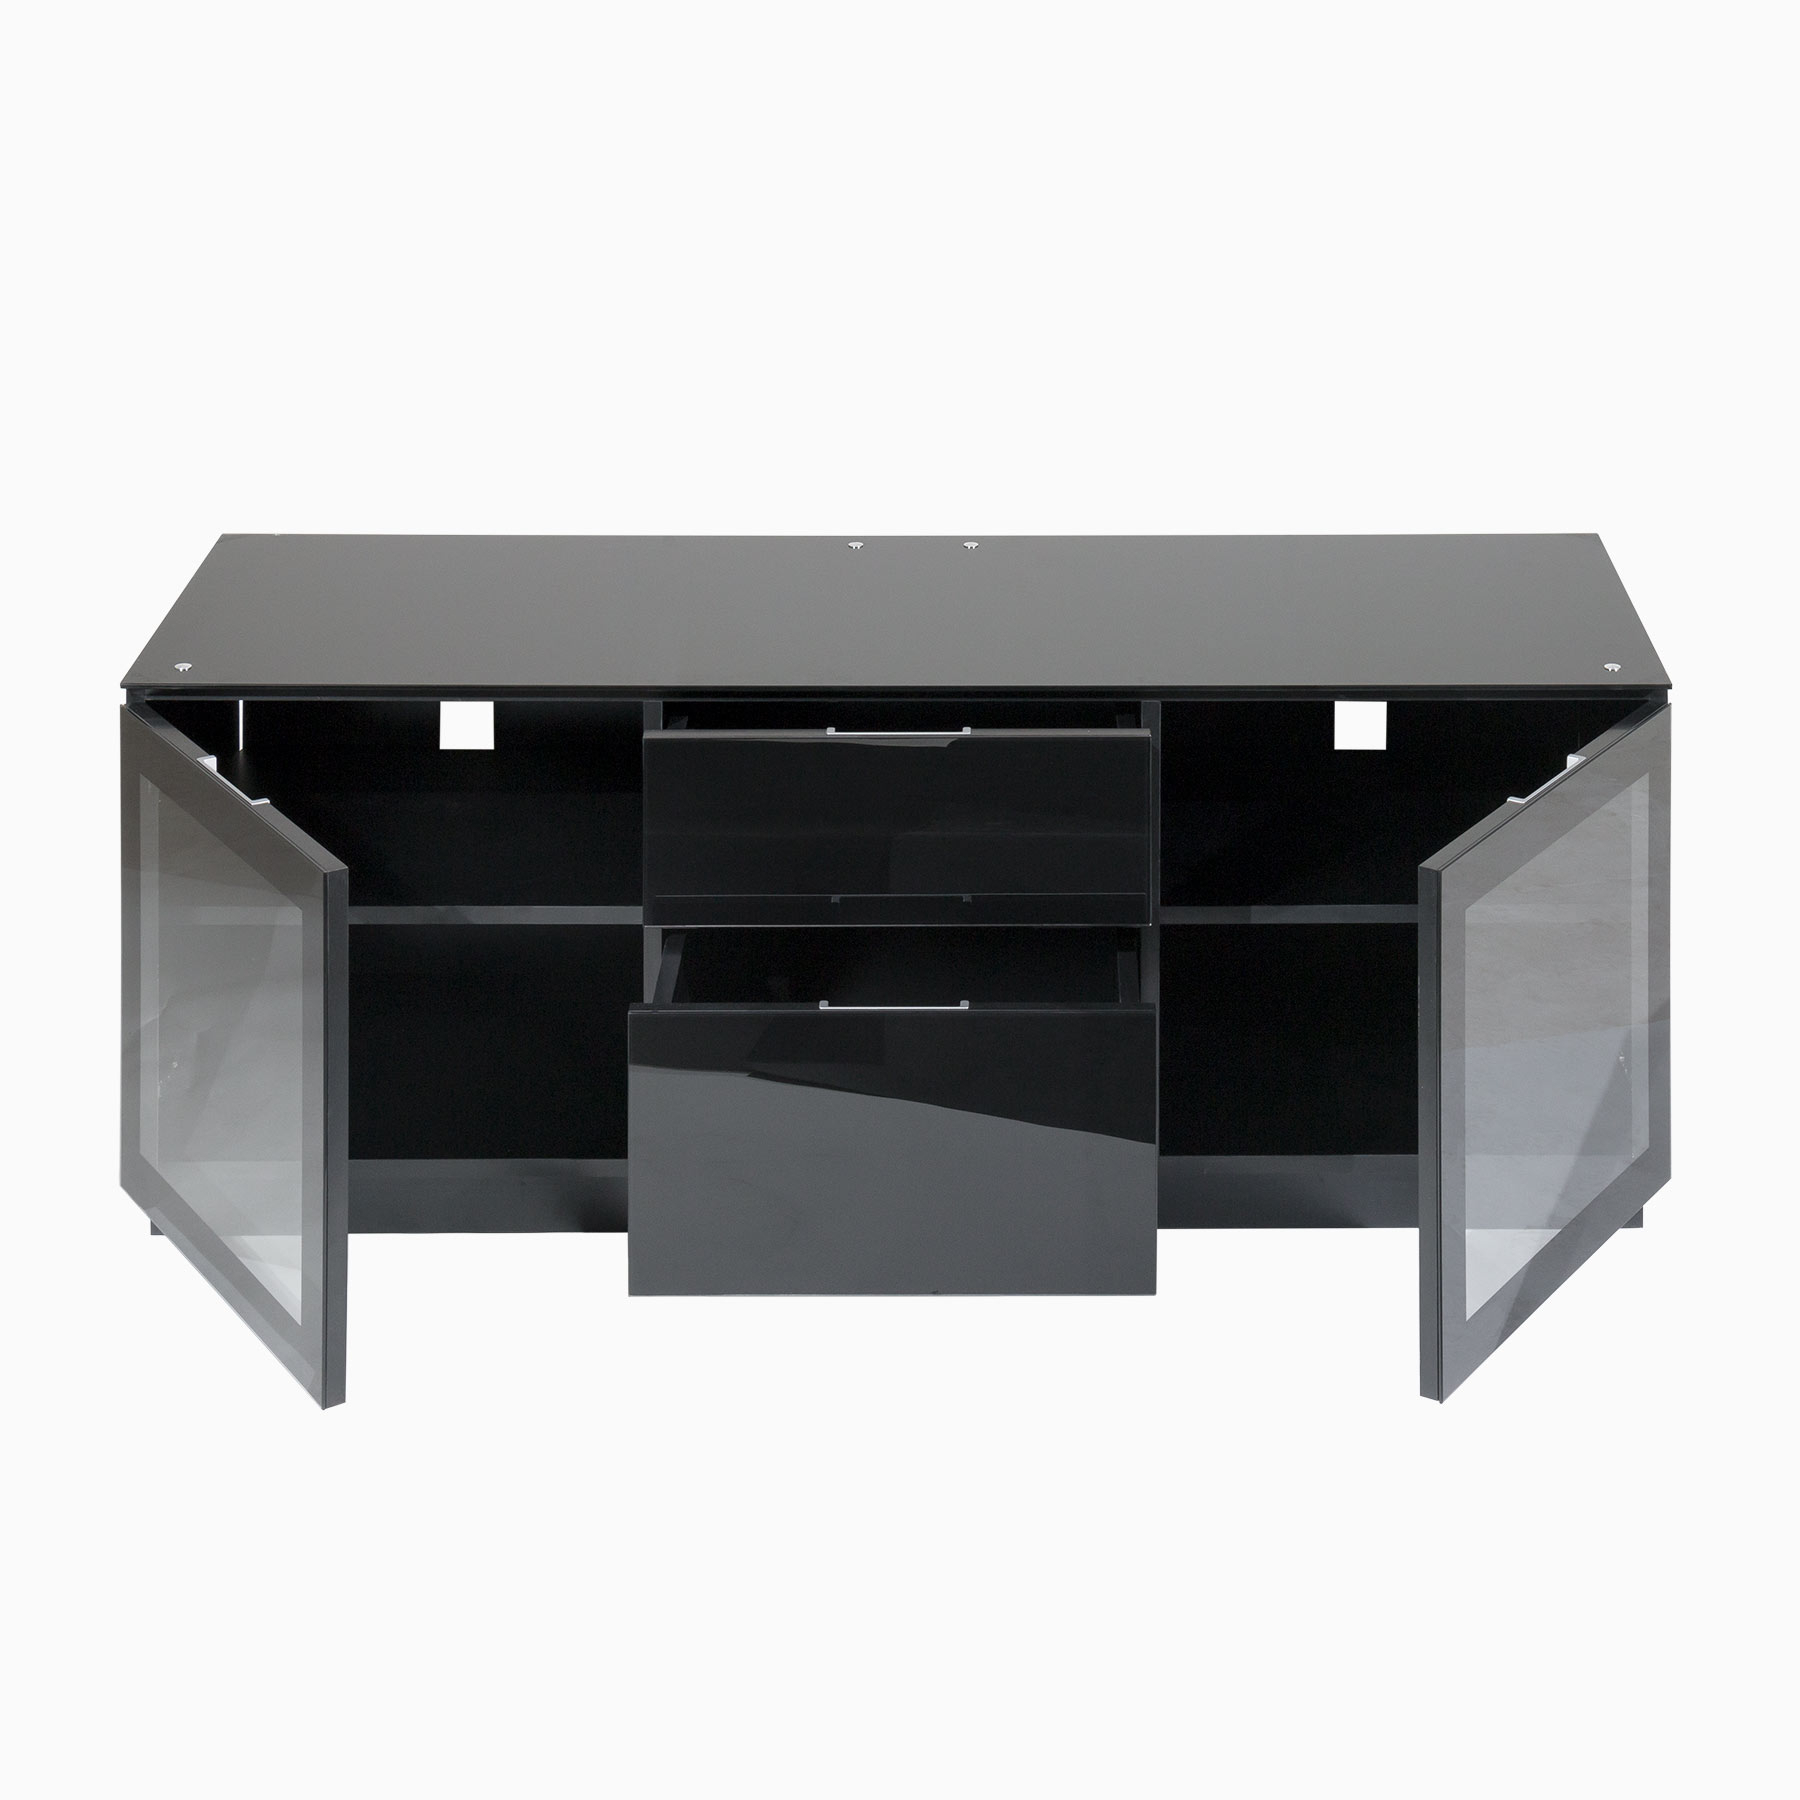 "Tv Cabinet With Doors And Drawers For Up To 65"" Screens Within Current Black Tv Cabinets With Drawers (View 16 of 20)"